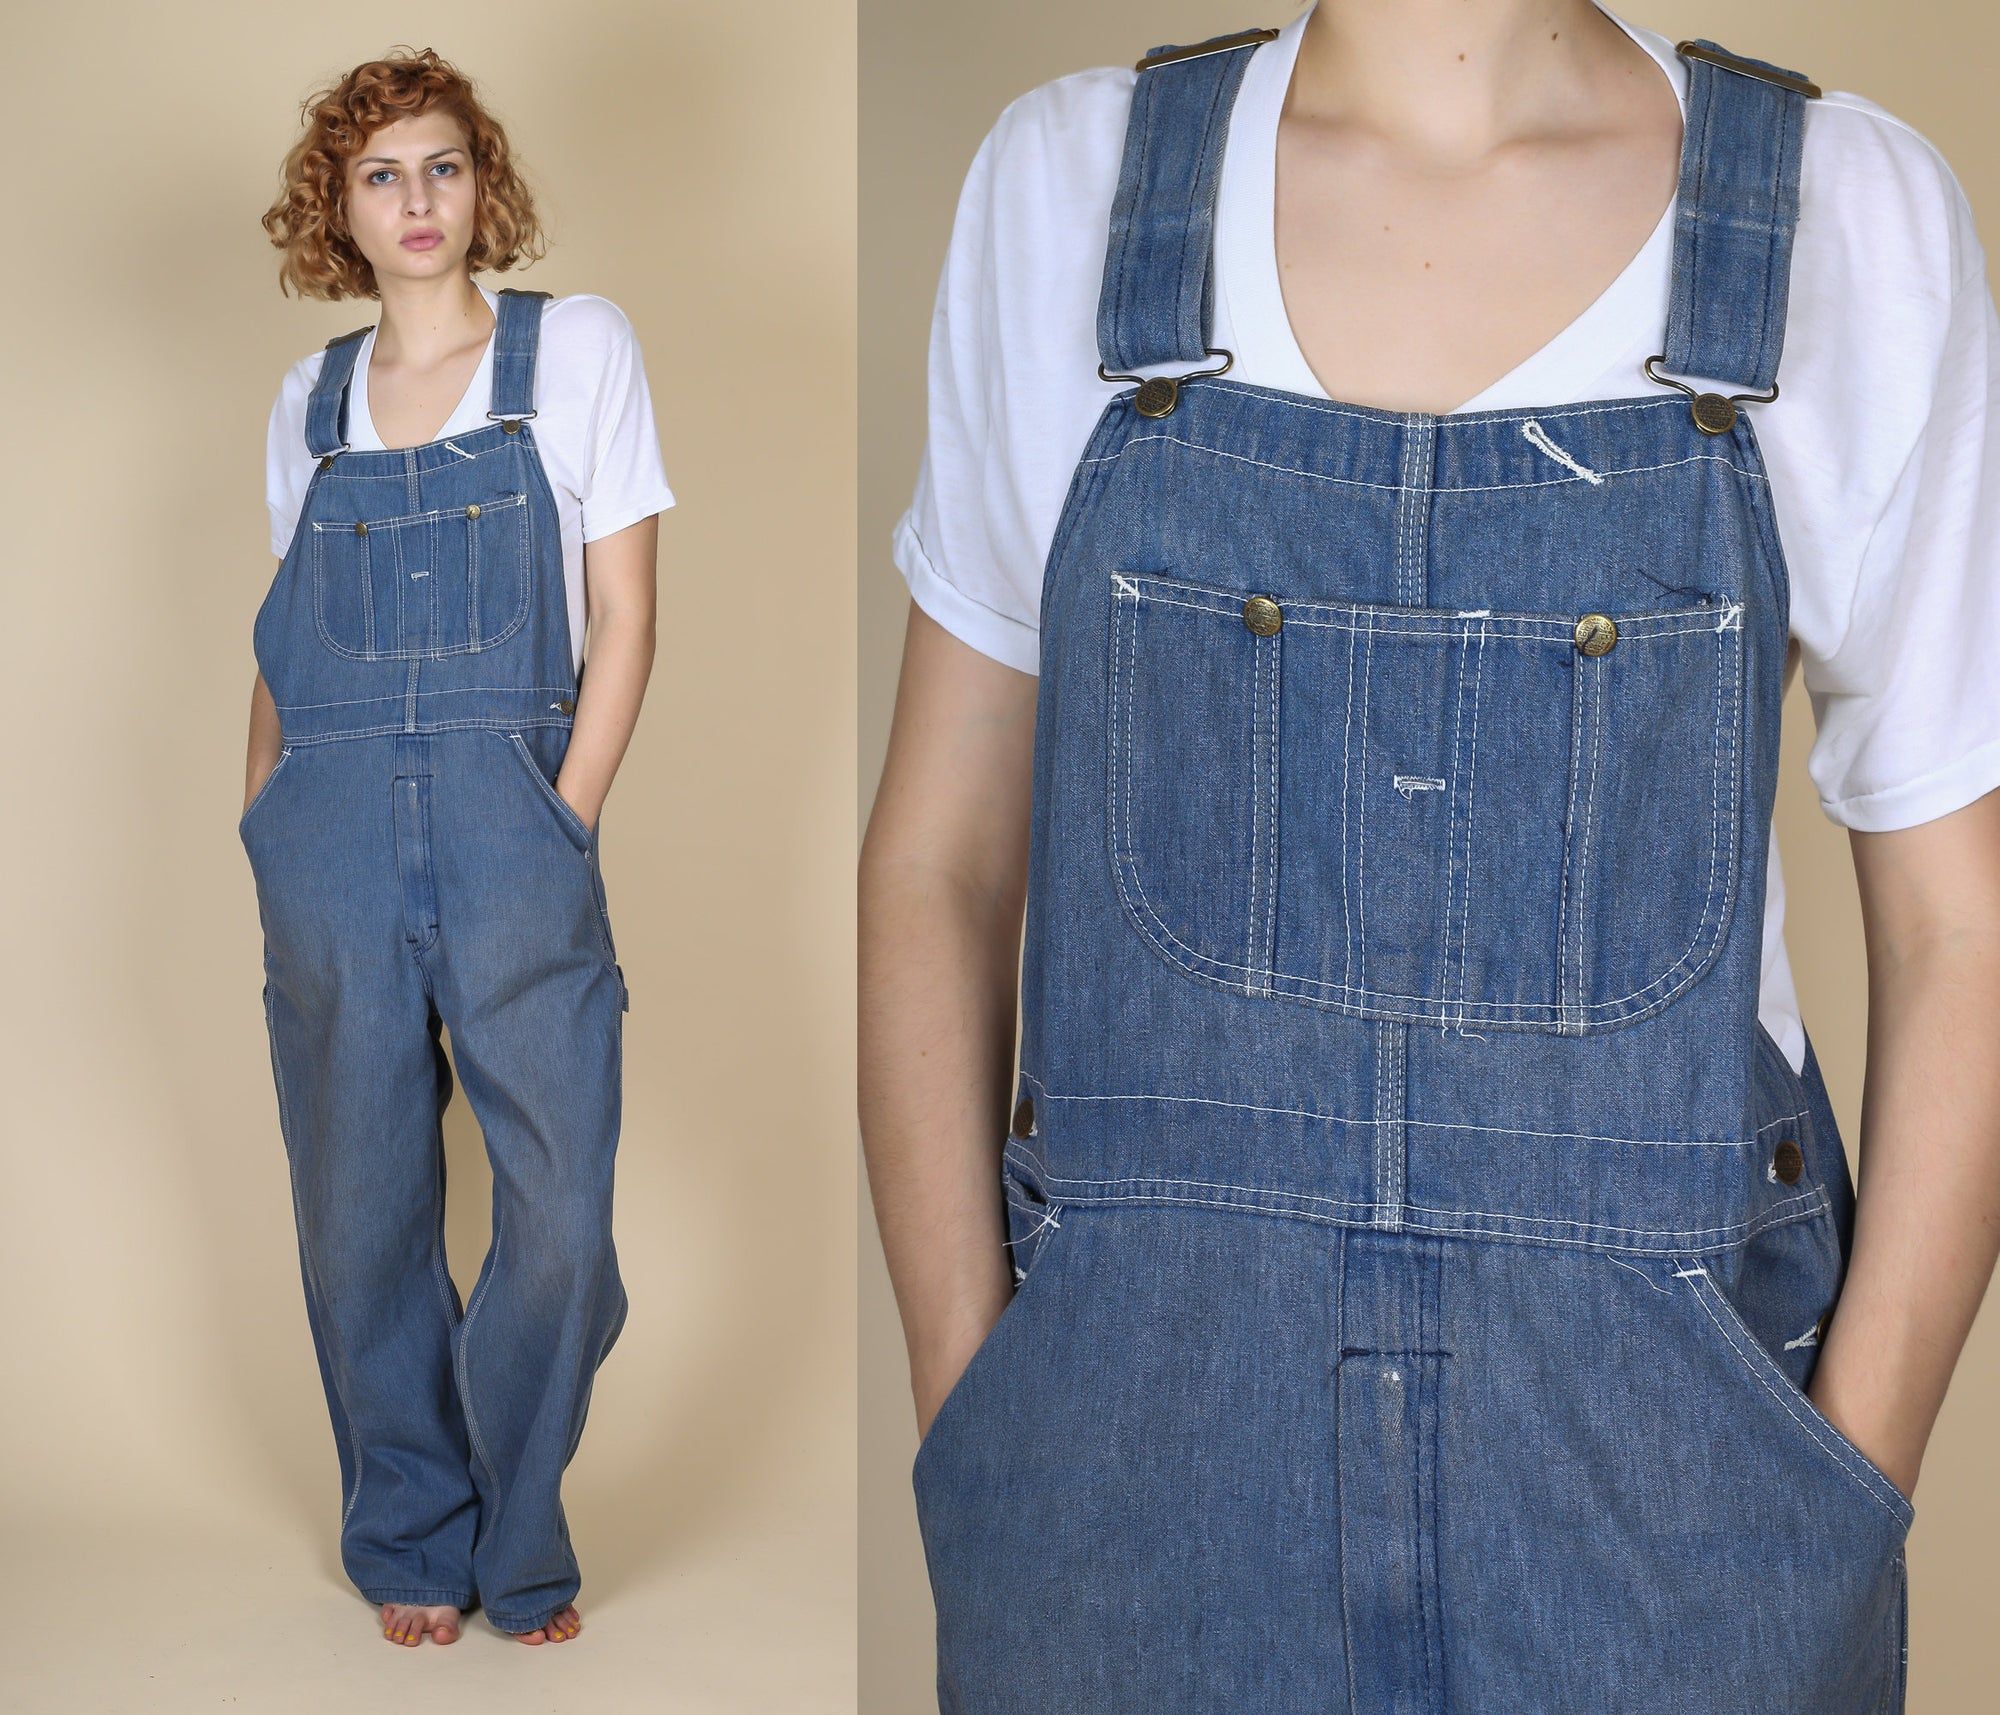 NEW Vanilla Star Blue Denim Jeans Jumpsuit Overall Vintage 70/'s 80/'s M Medium